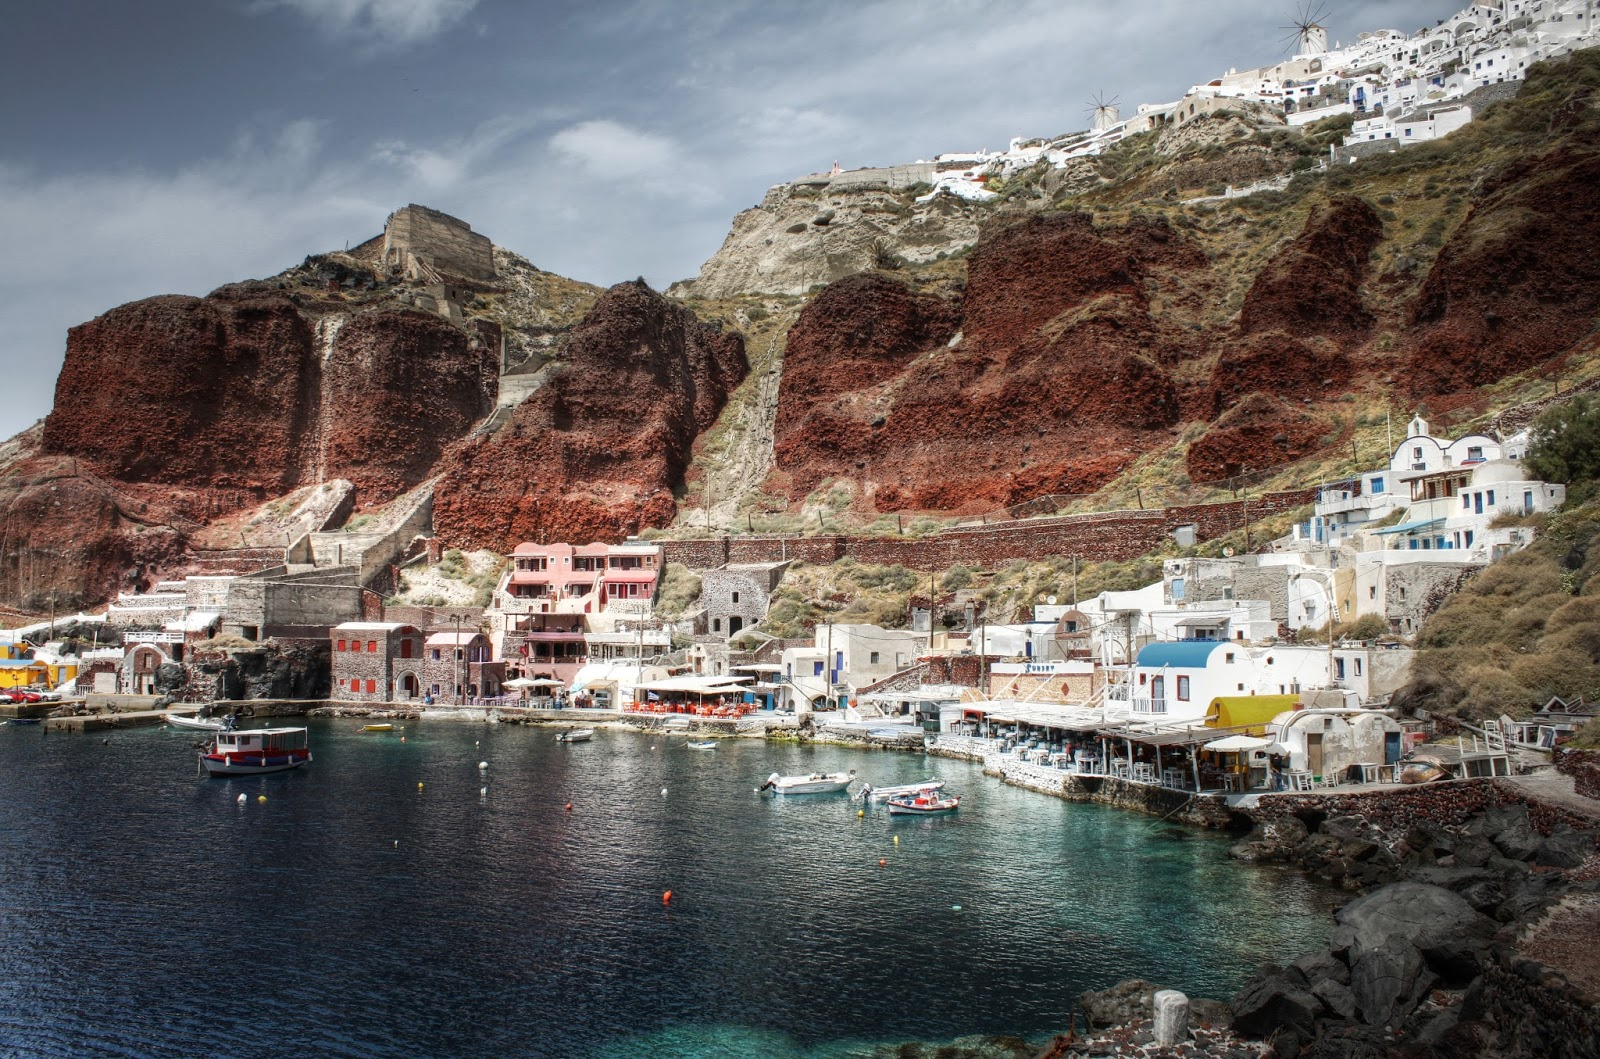 The 10 Best Things To Do In Santorini Island - Go cliff jumping at Amoudi Bay